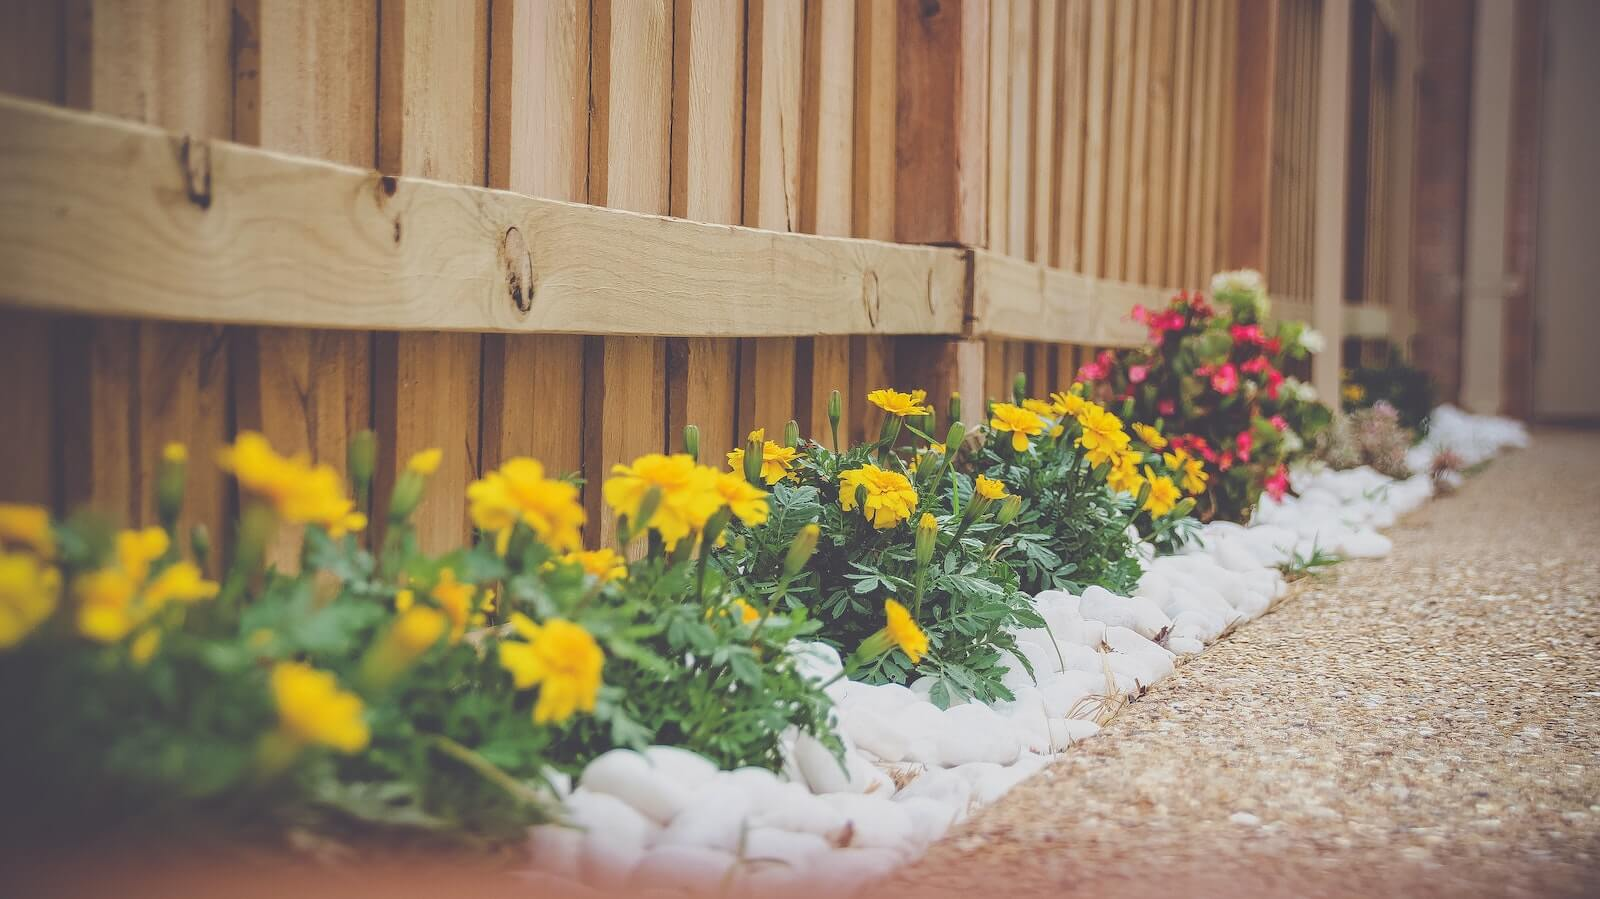 Workplace safety series: landscaping